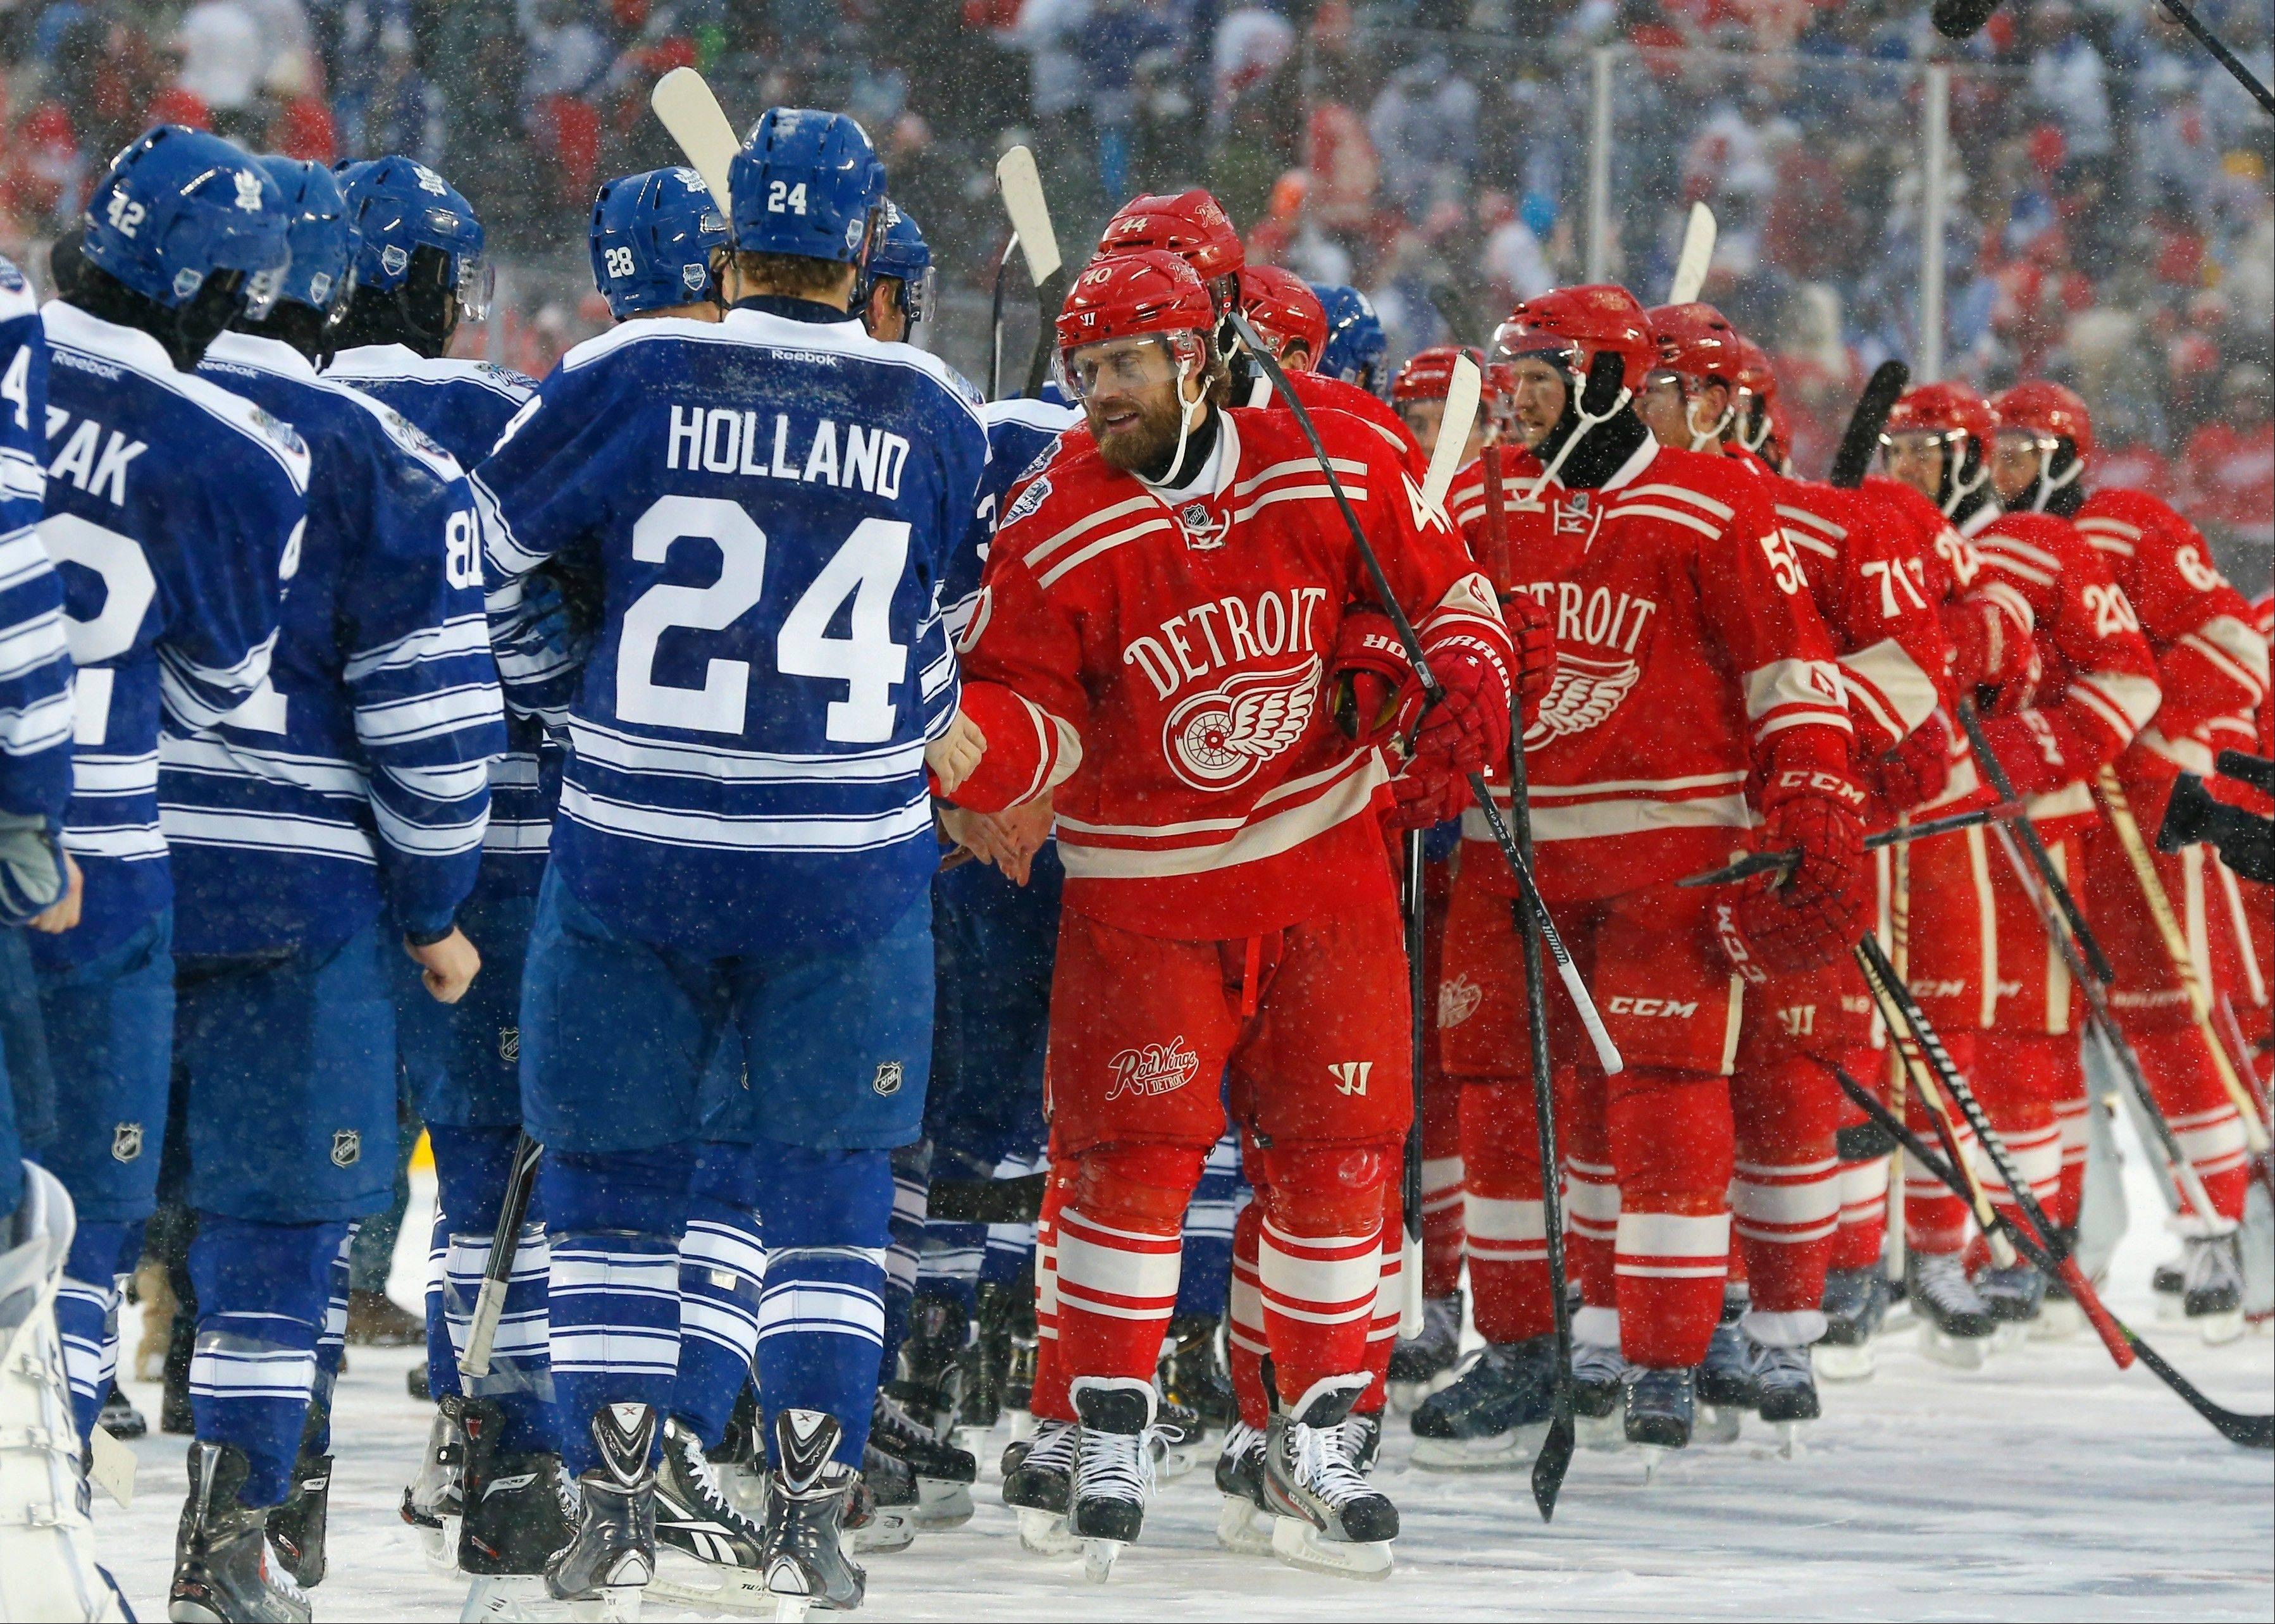 Detroit Red Wings left wing Henrik Zetterberg leads his team as they shake the hands of the Toronto Maple Leafs after the Winter Classic outdoor NHL hockey game at Michigan Stadium in Ann Arbor, Mich., Wednesday, Jan. 1, 2014. The Maple Leafs won 3-2.